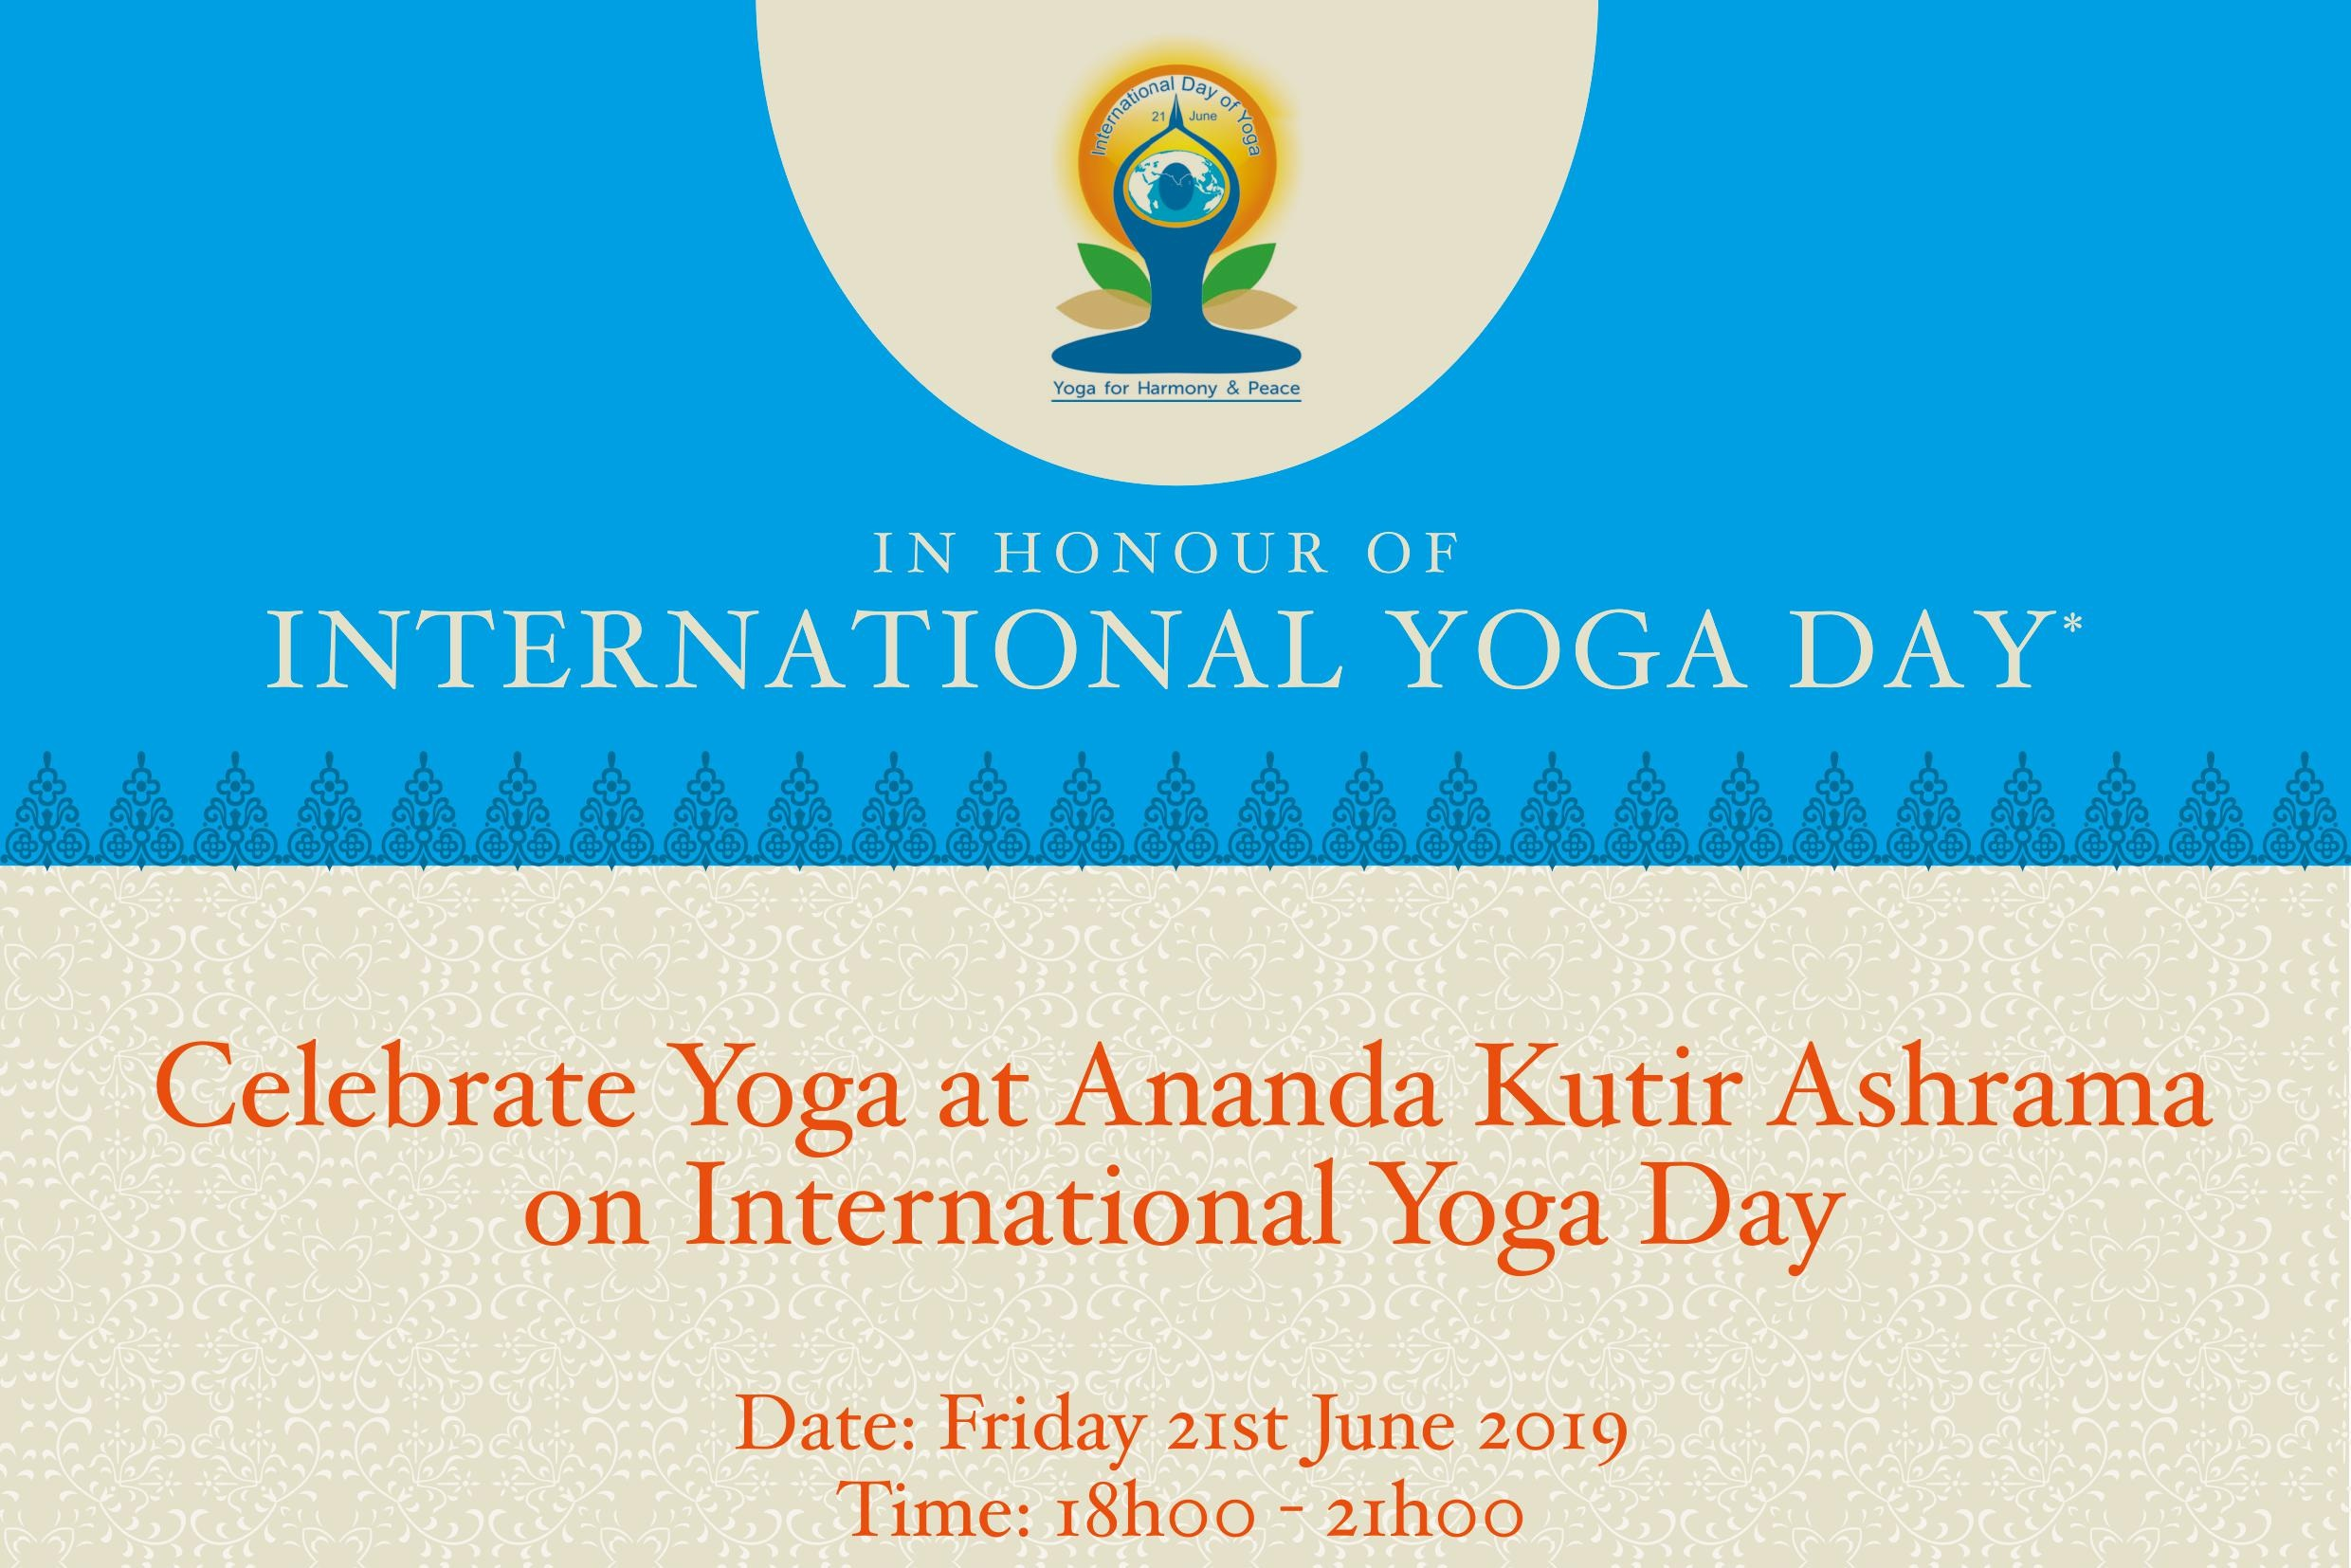 Rondebosch, Cape Town - 21 June 18:00-21:00Ananda Kutir AshhramaHatha Yoga, Meditation, Talk on integral yoga, Kirtan, Prasad